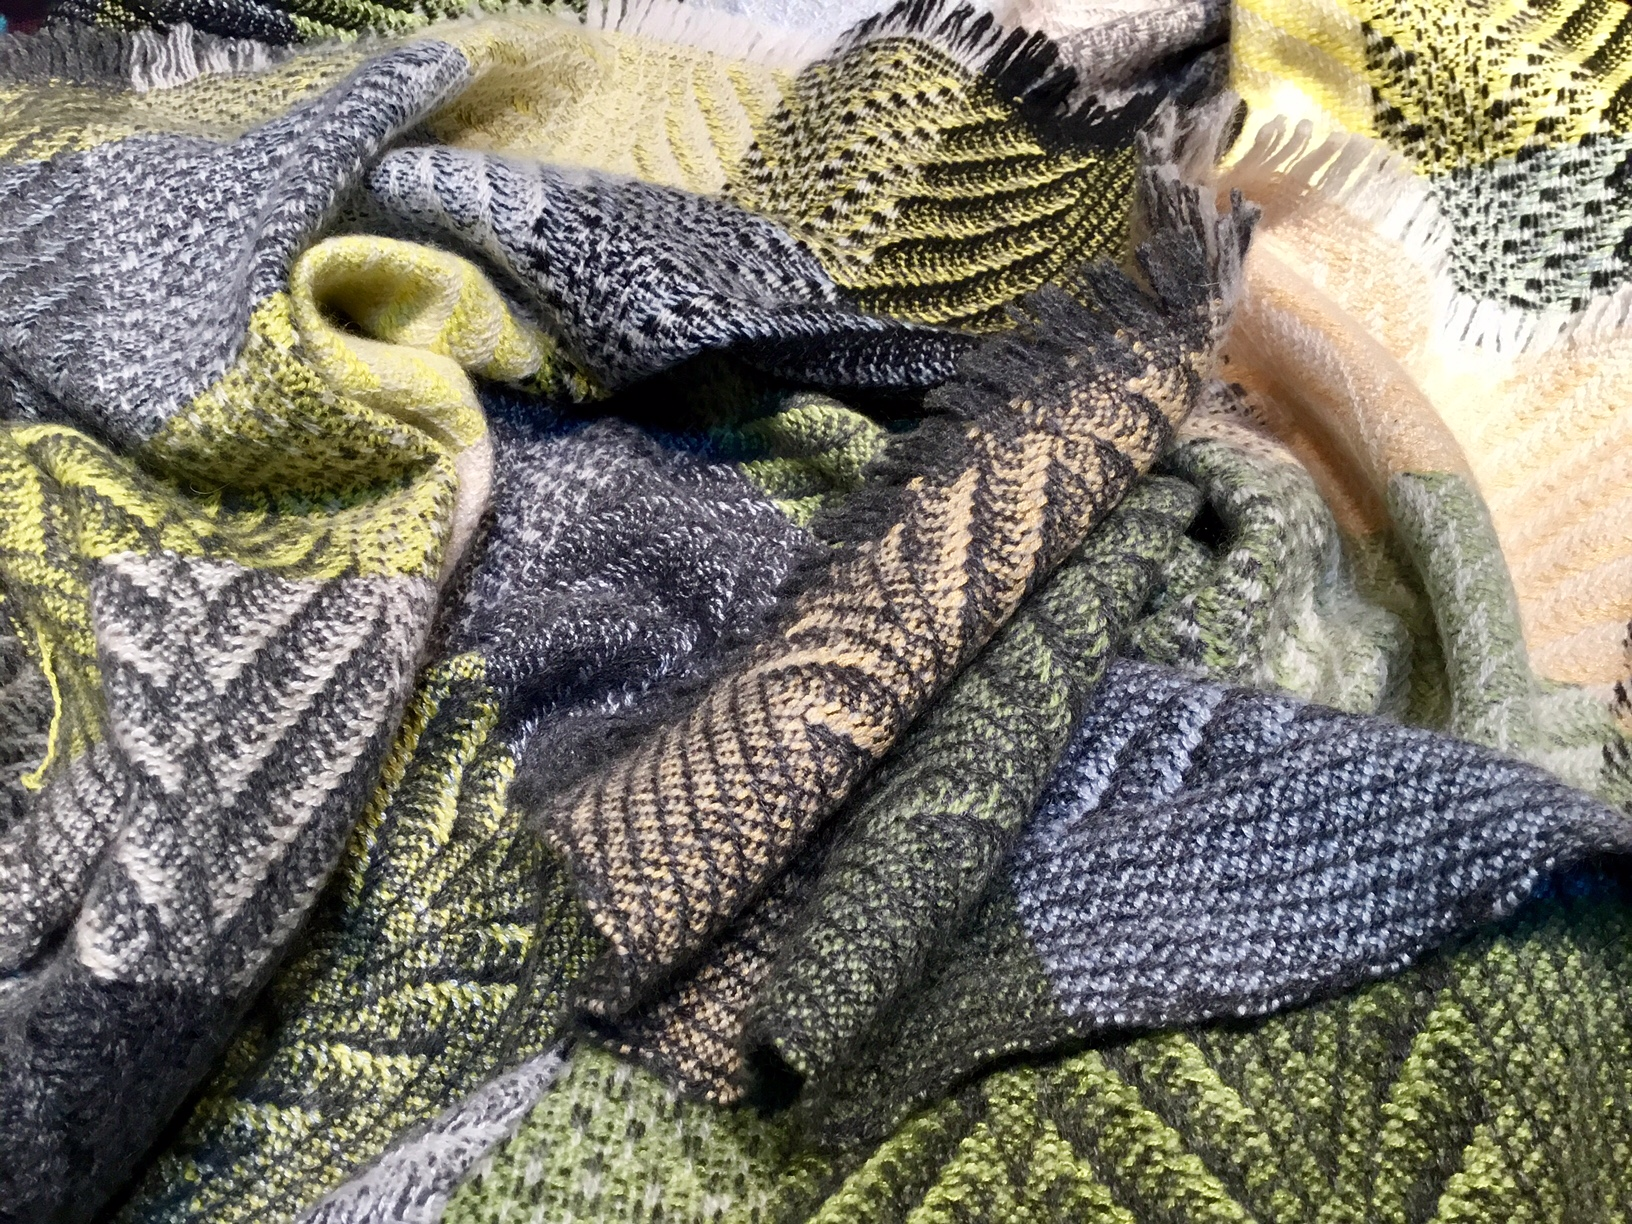 Time for a bath - When the fabric is ready, it's time for the wash. We wash out all the stiffening agent that yarn companies add to aid in the weaving process, leaving the fabric gloriously soft.